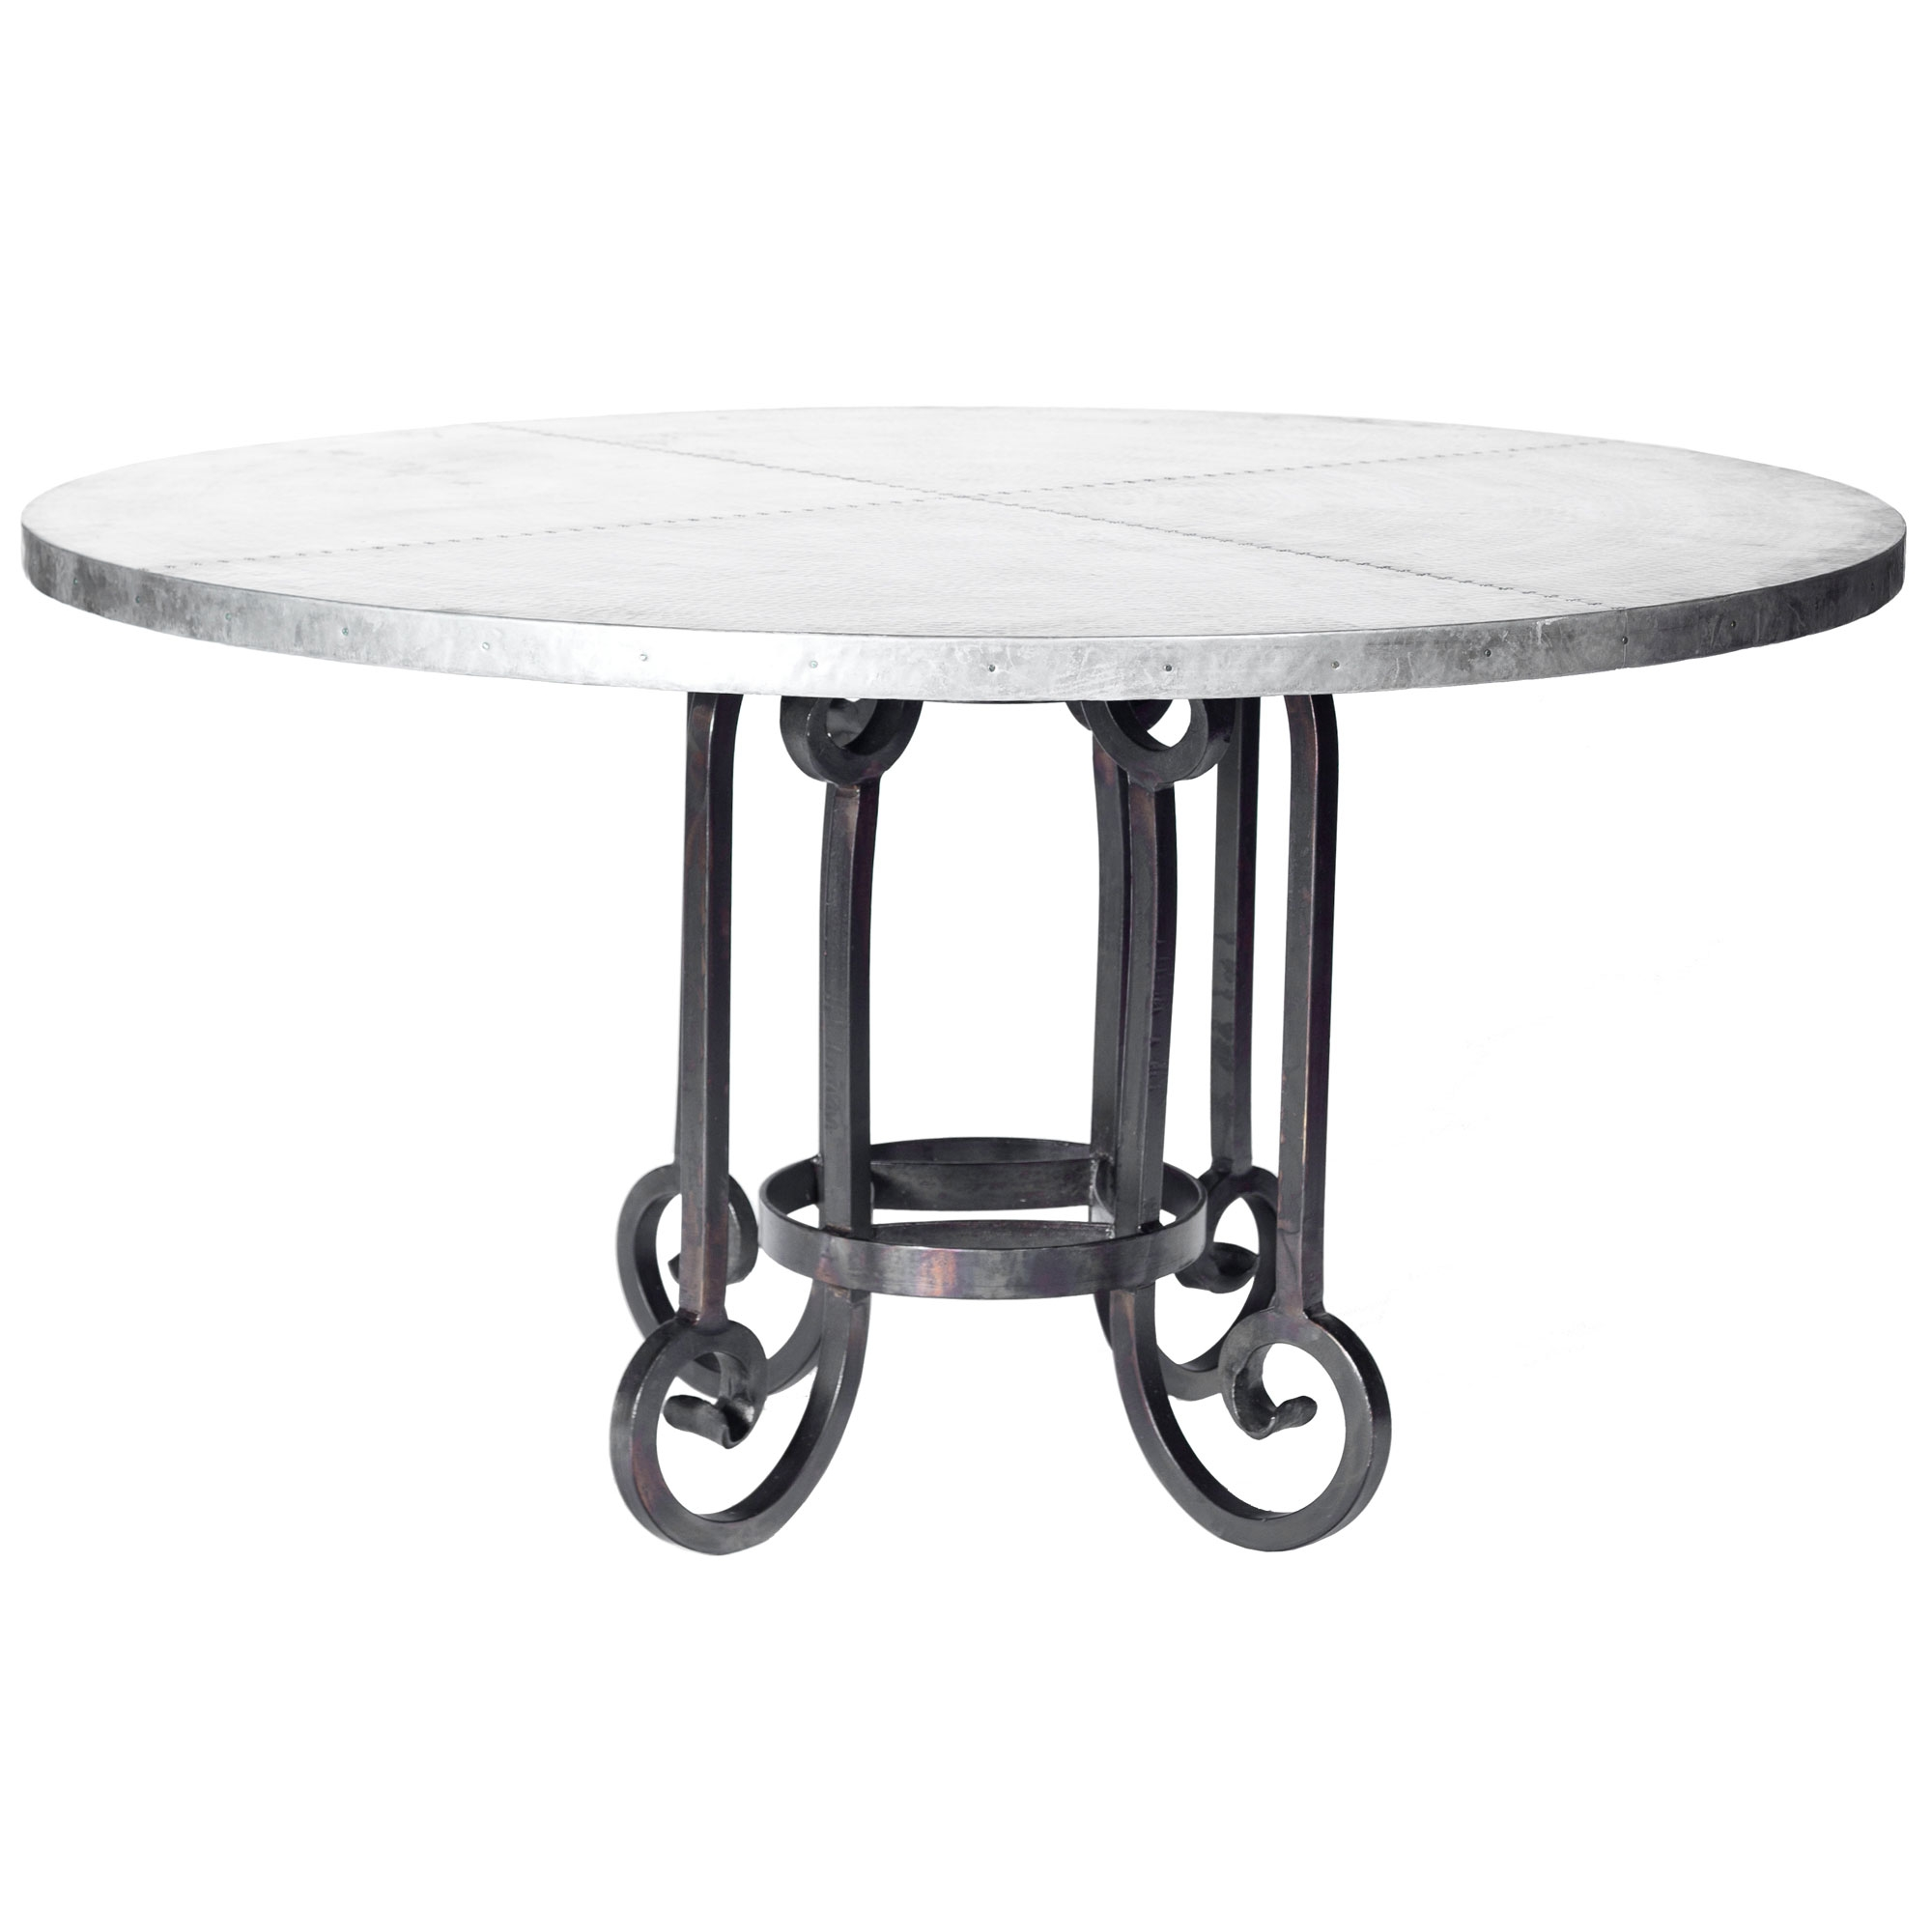 Curled Leg Iron Dining Table With 54 Round Hammered Zinc Top